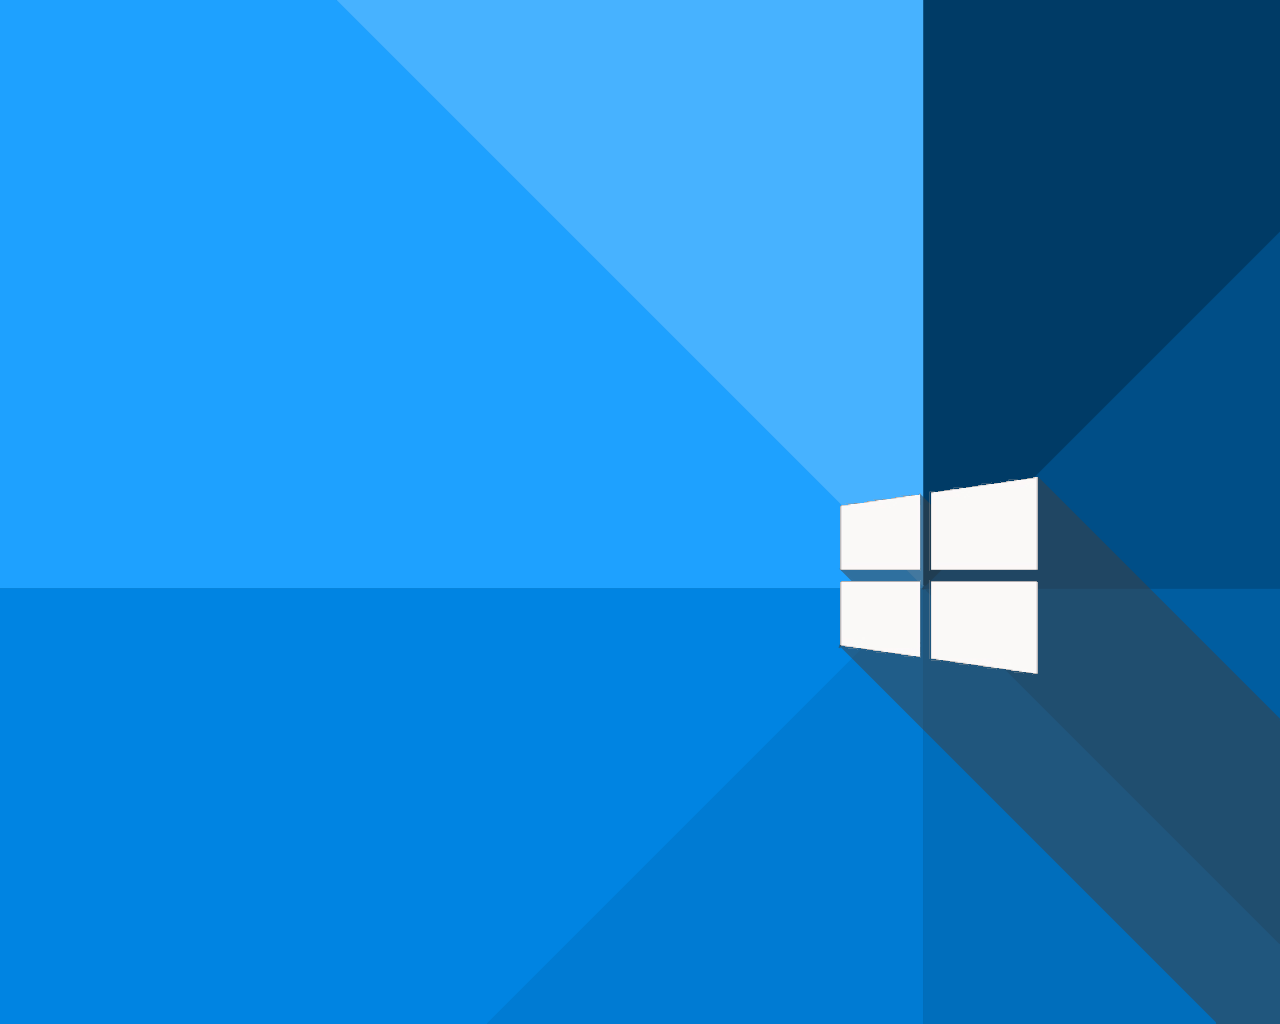 Minimalistic material windows 8 by glitchypsix on deviantart for Window design wallpaper